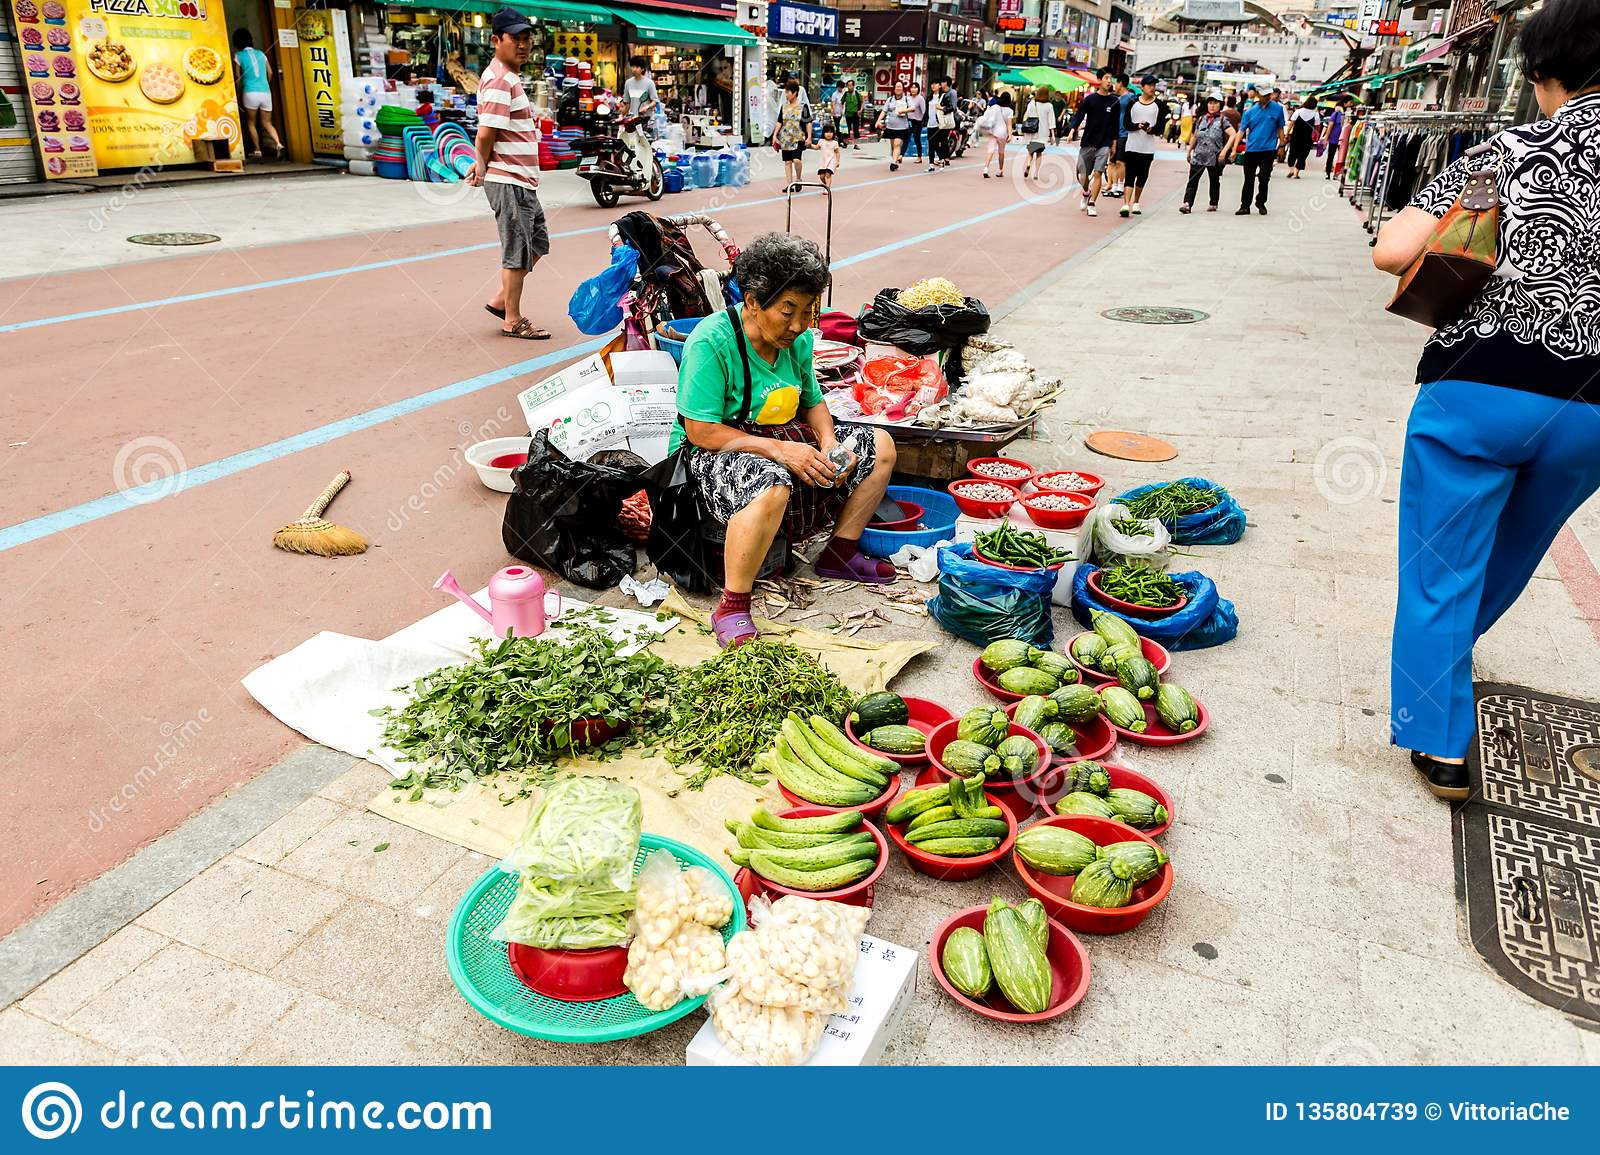 Suwon, South Korea - June 25, 2017: Vendor woman selling vegetables and fruits in the street market at downtown in Suwon